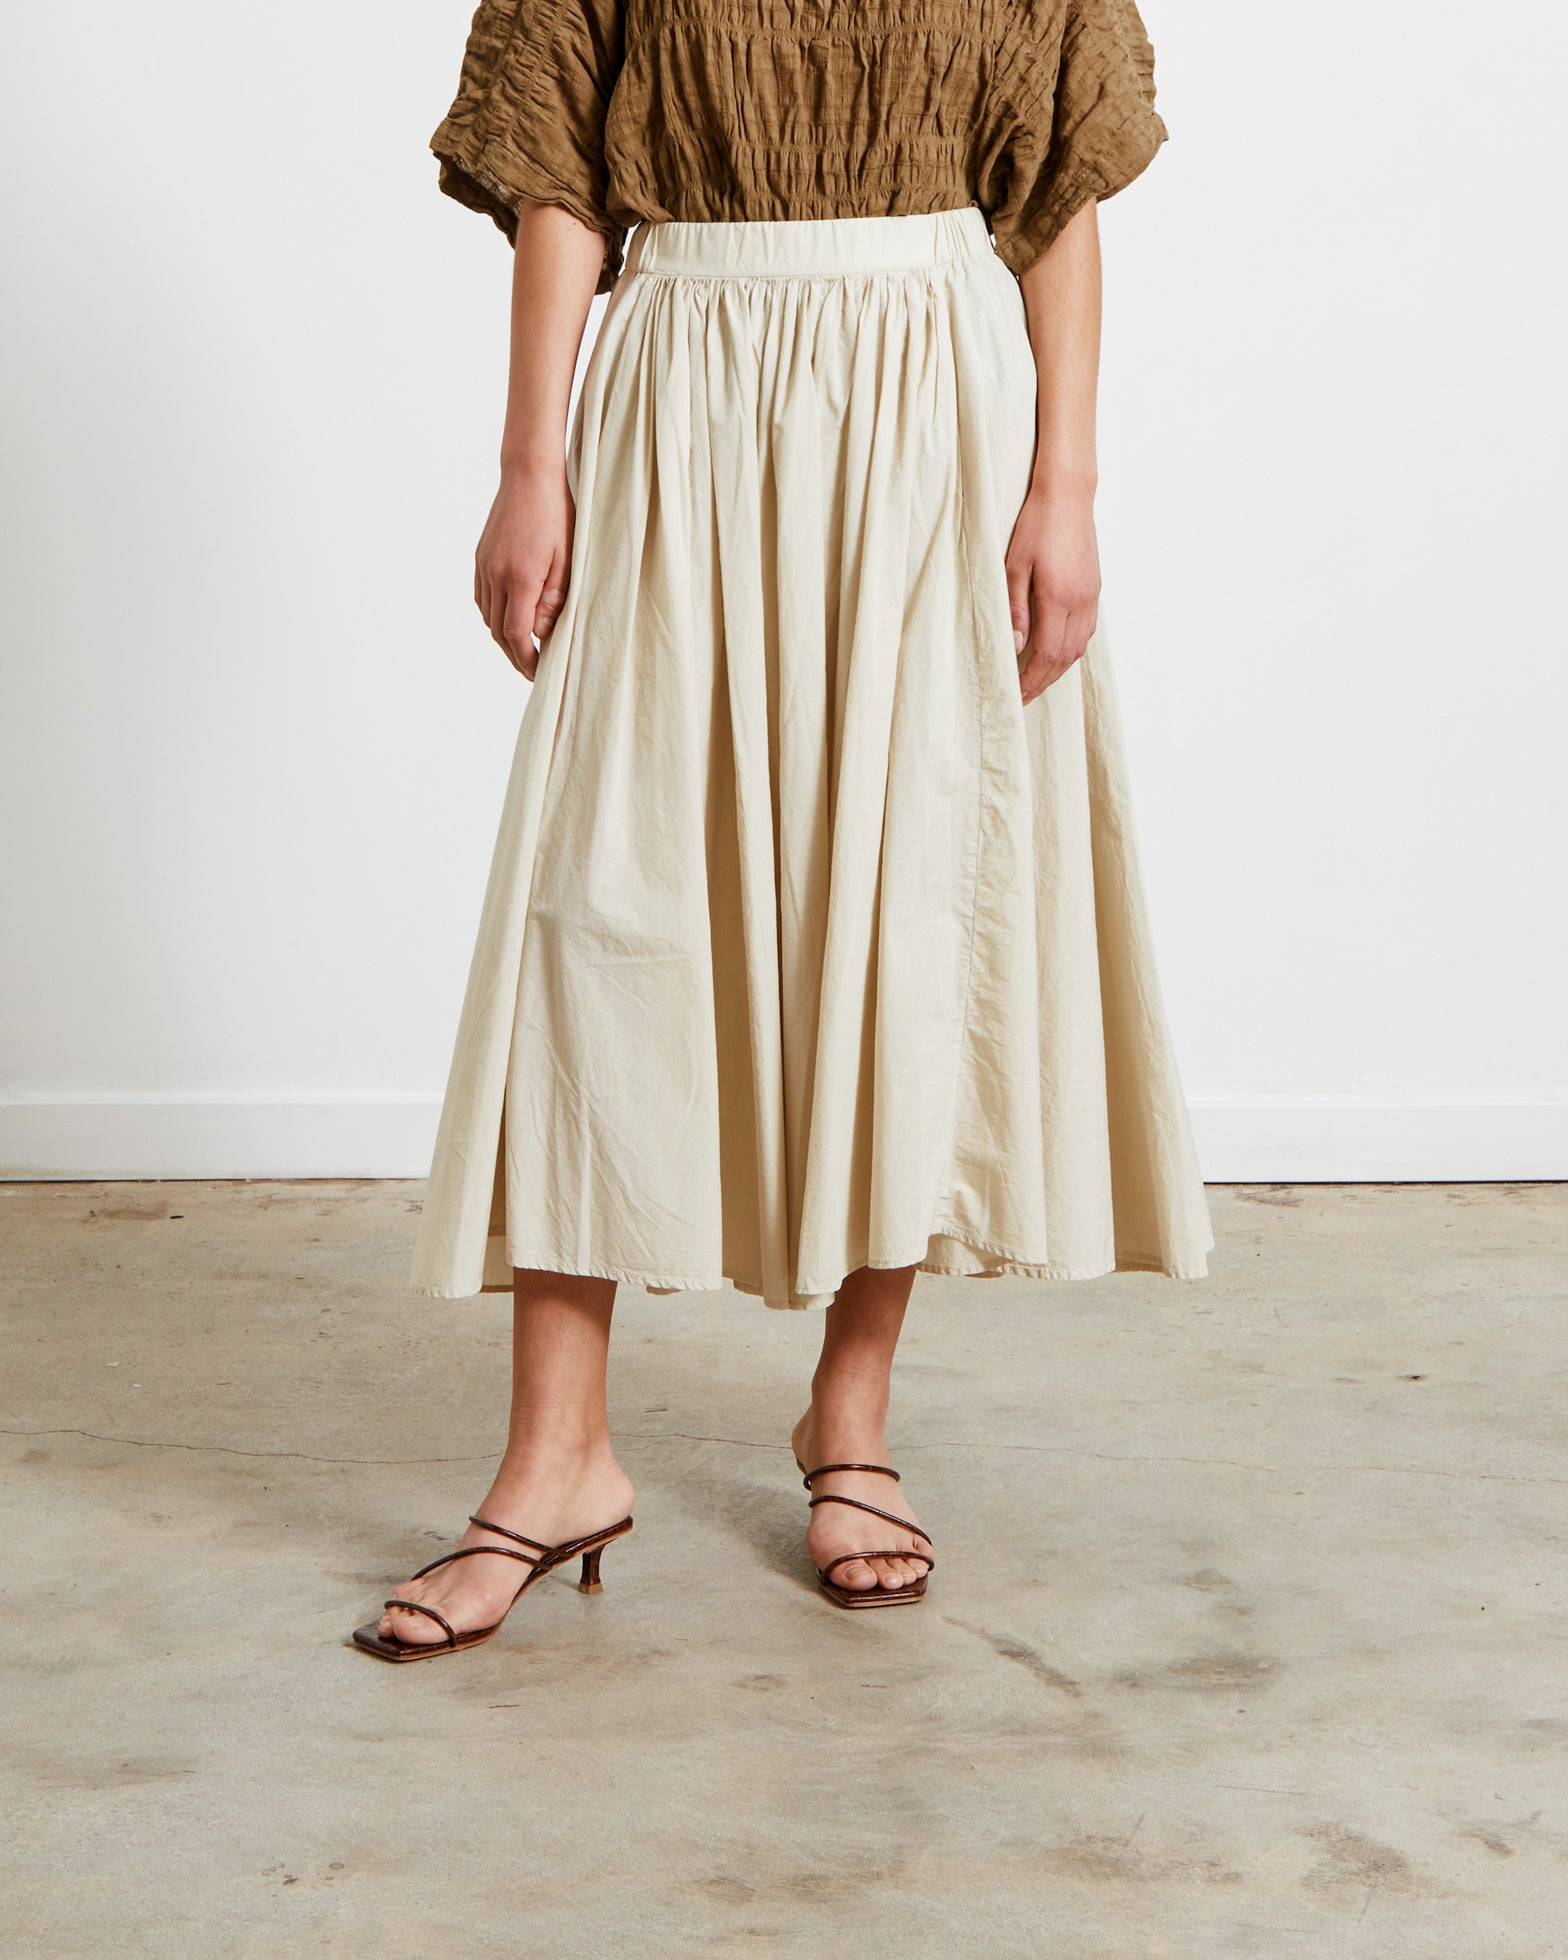 Mohawk General Store | Black Crane | Petal Skirt in Cloud